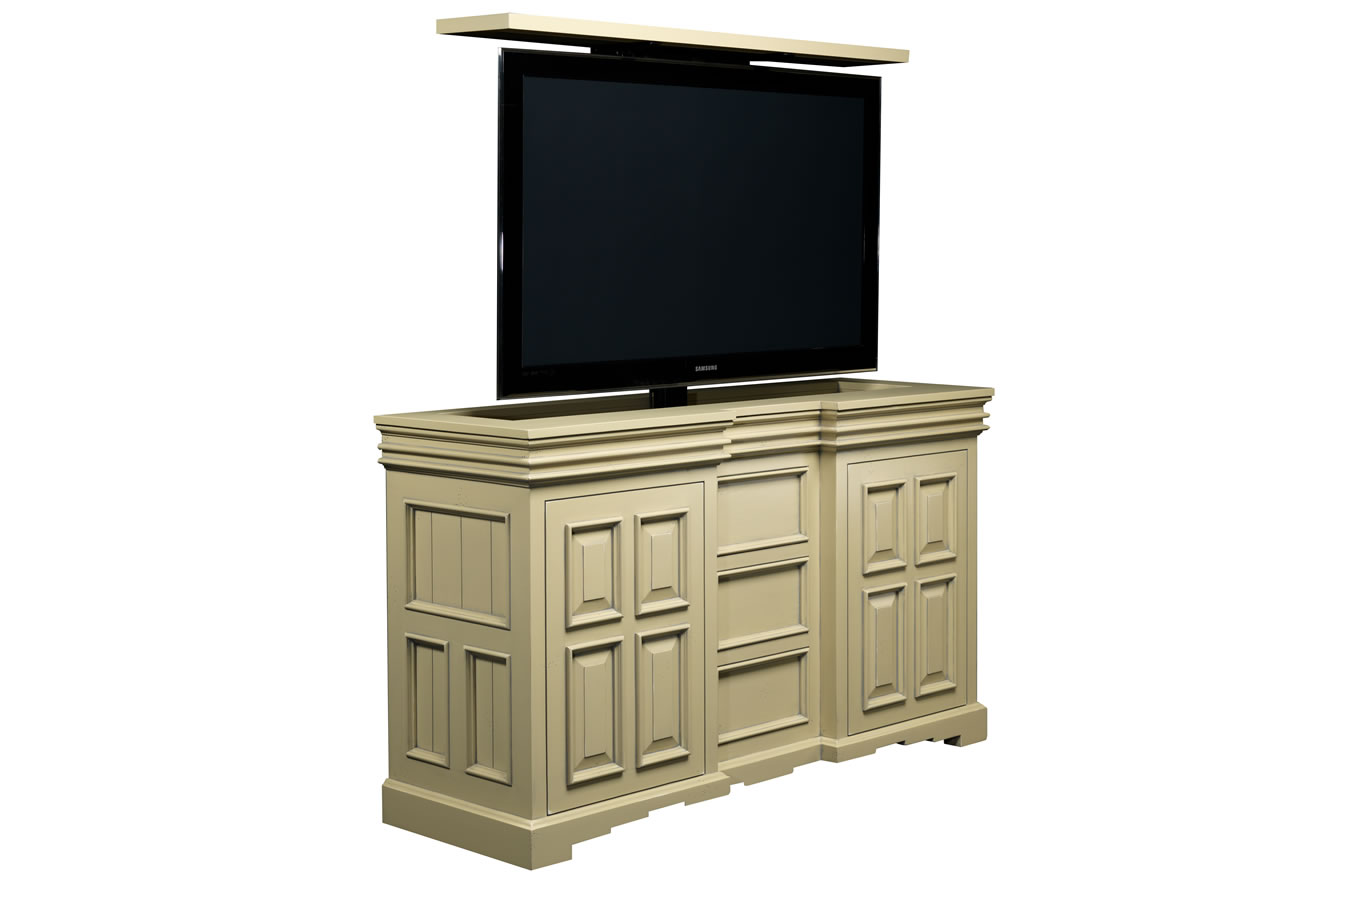 cordova pop up tv lift cabinet cabinet tronix. Black Bedroom Furniture Sets. Home Design Ideas